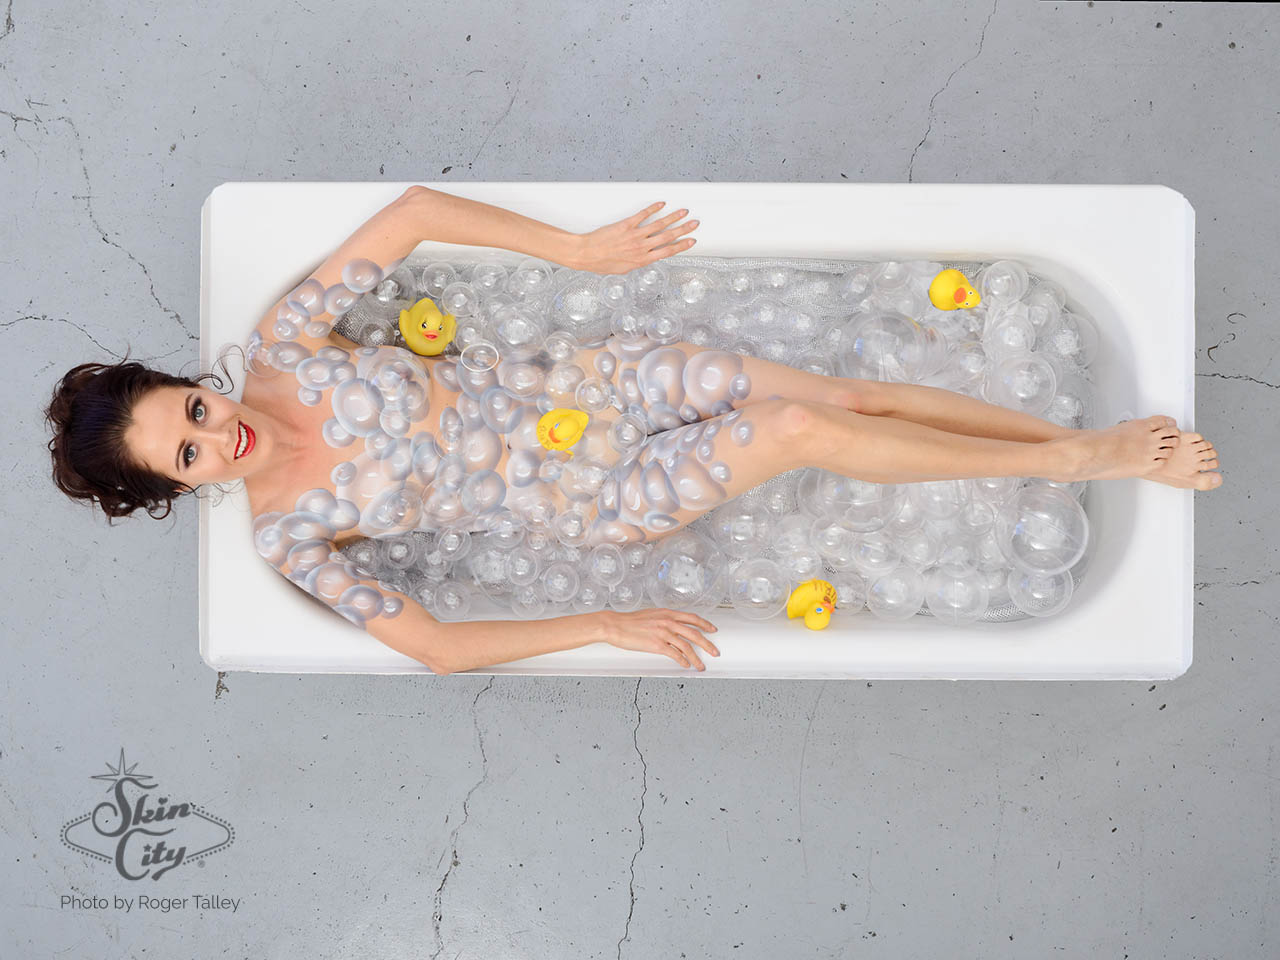 Skin City Bathtub Bubbles